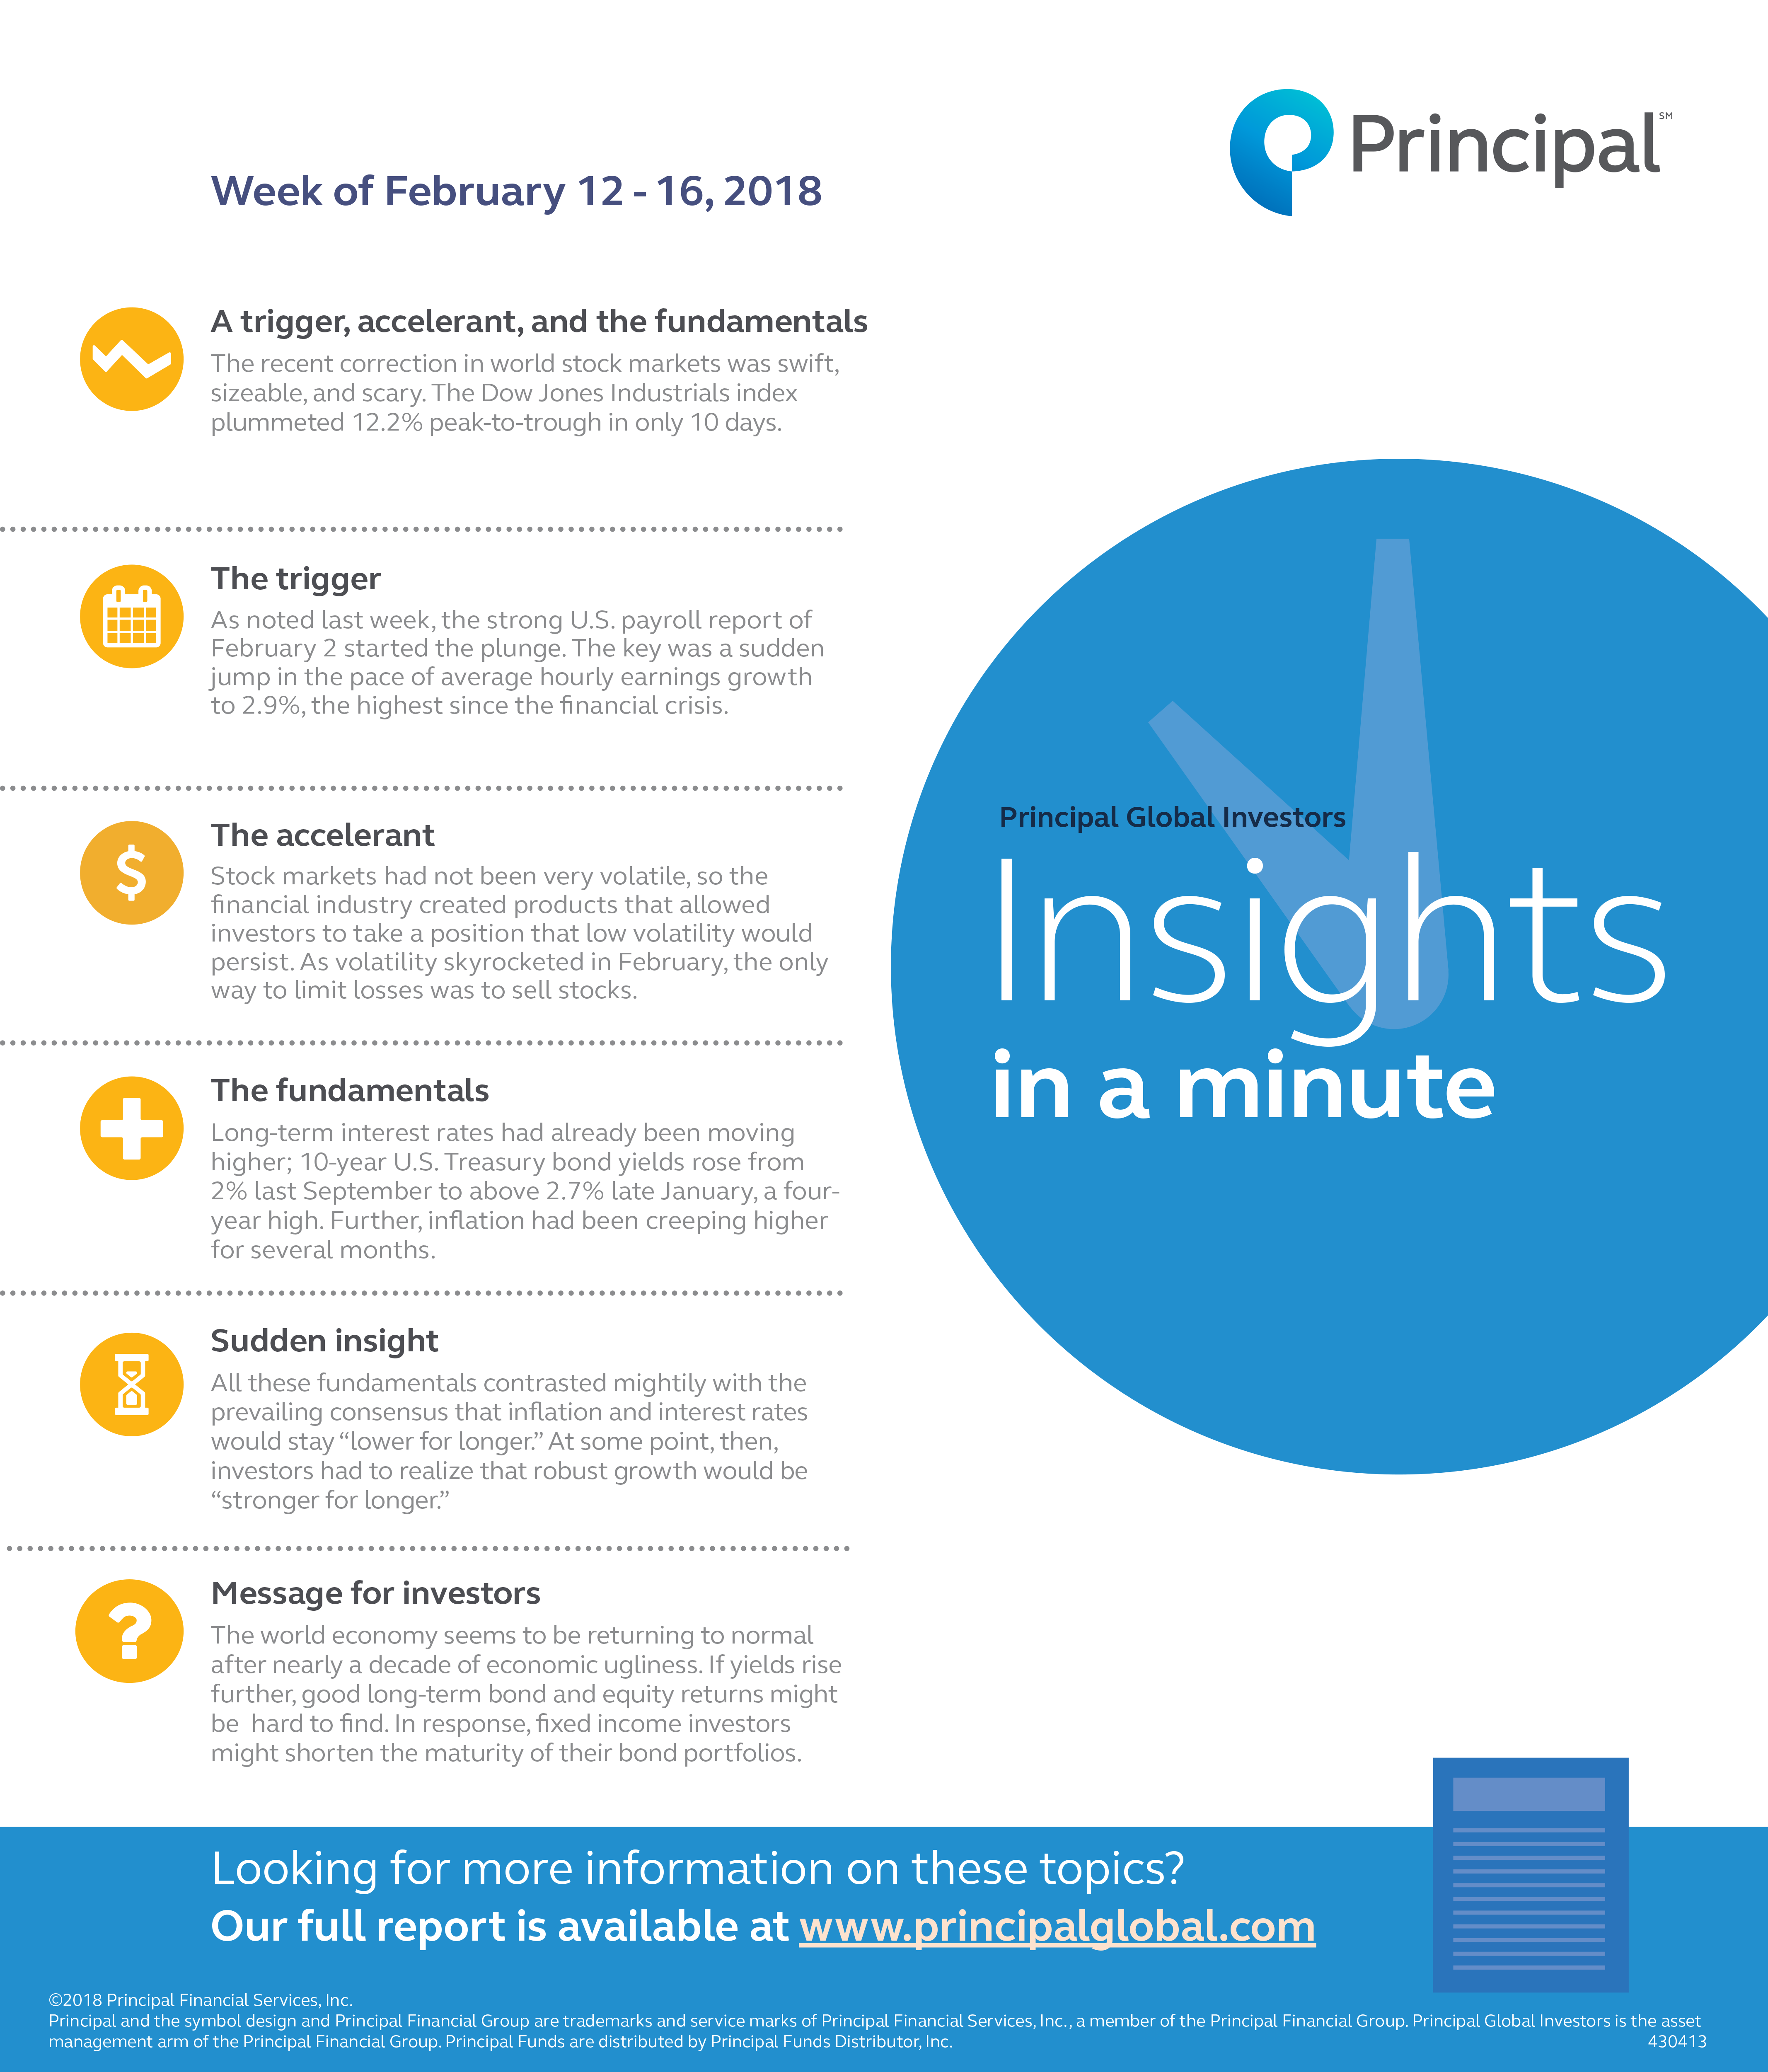 Insights for February 12-16